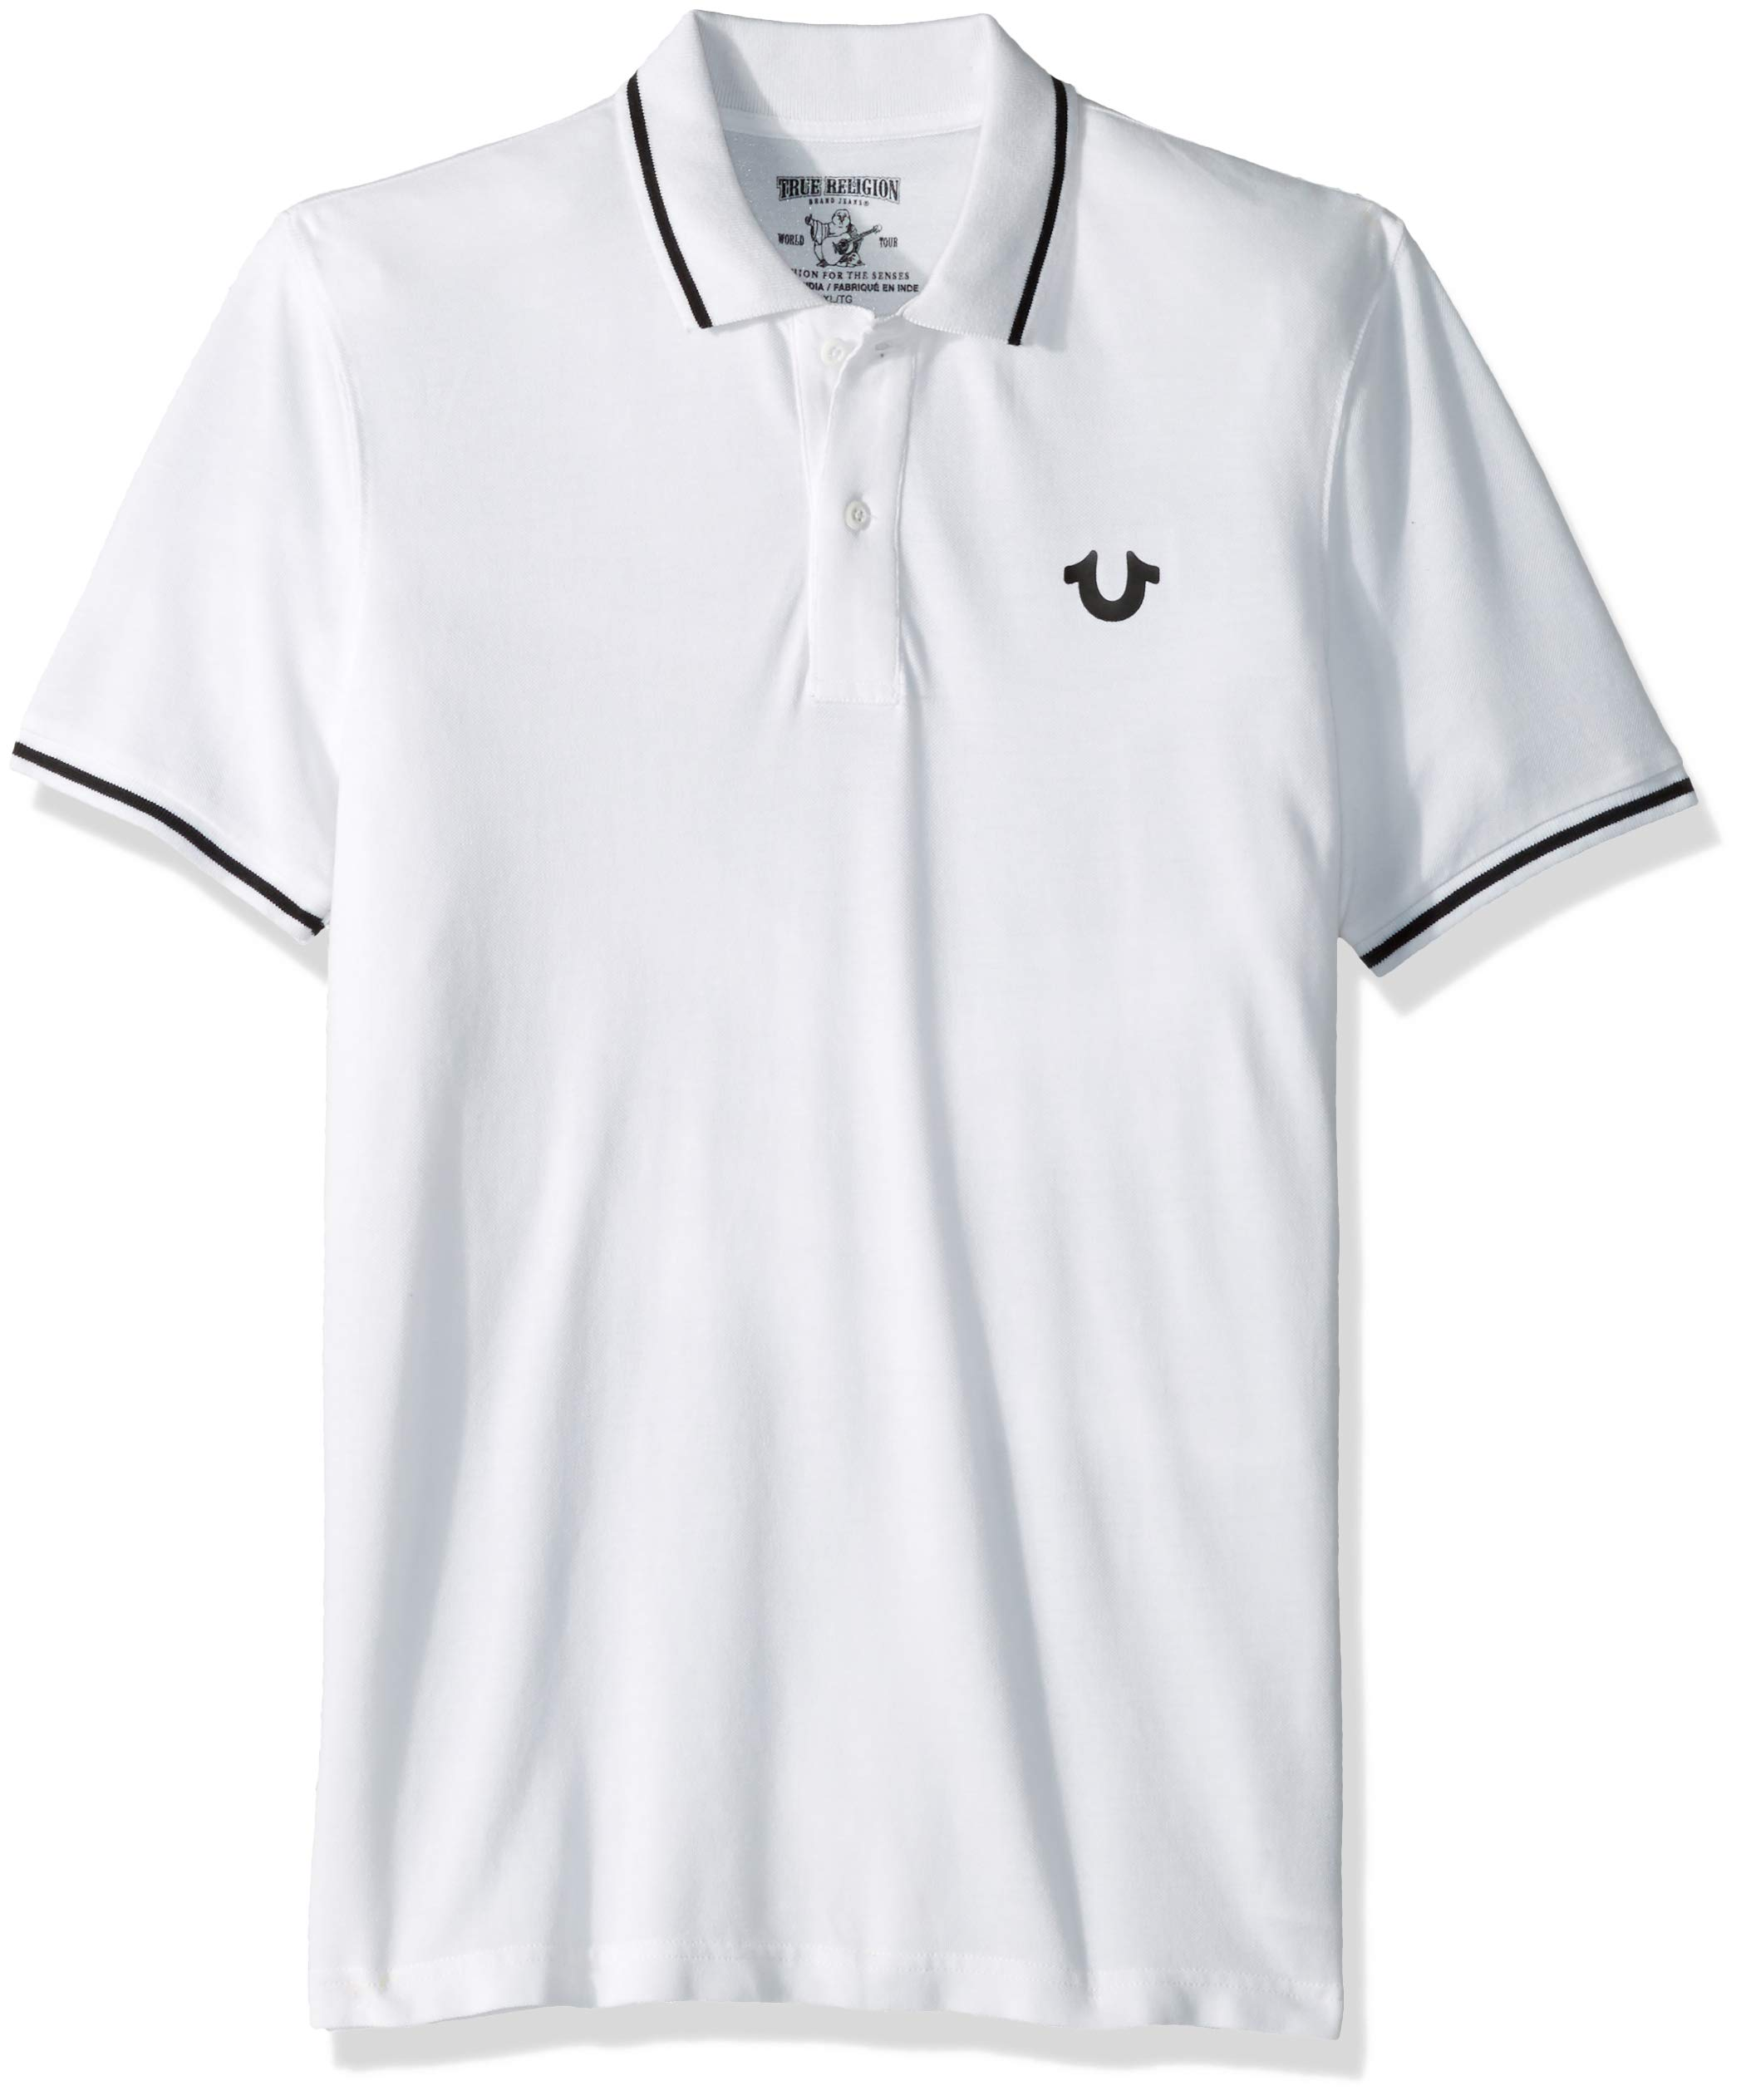 True Religion Men's Crafted with Pride Polo, White with Black Piping, XXL